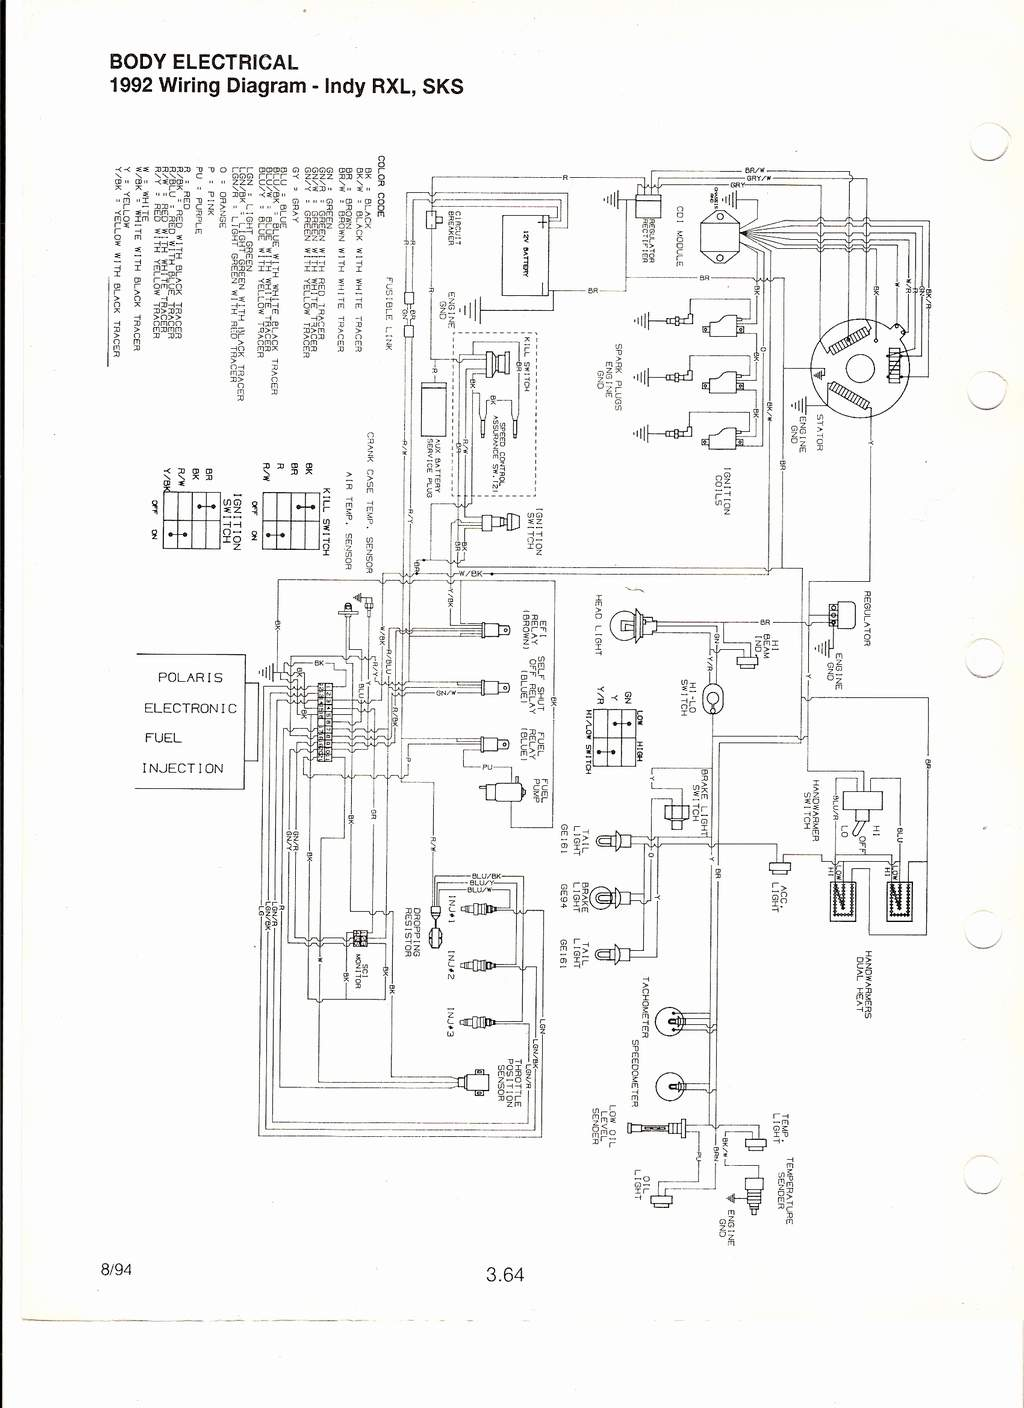 Polaris 650 Wiring Diagram Libraries Todays650 Rxl To Carb Conversion Ignition System